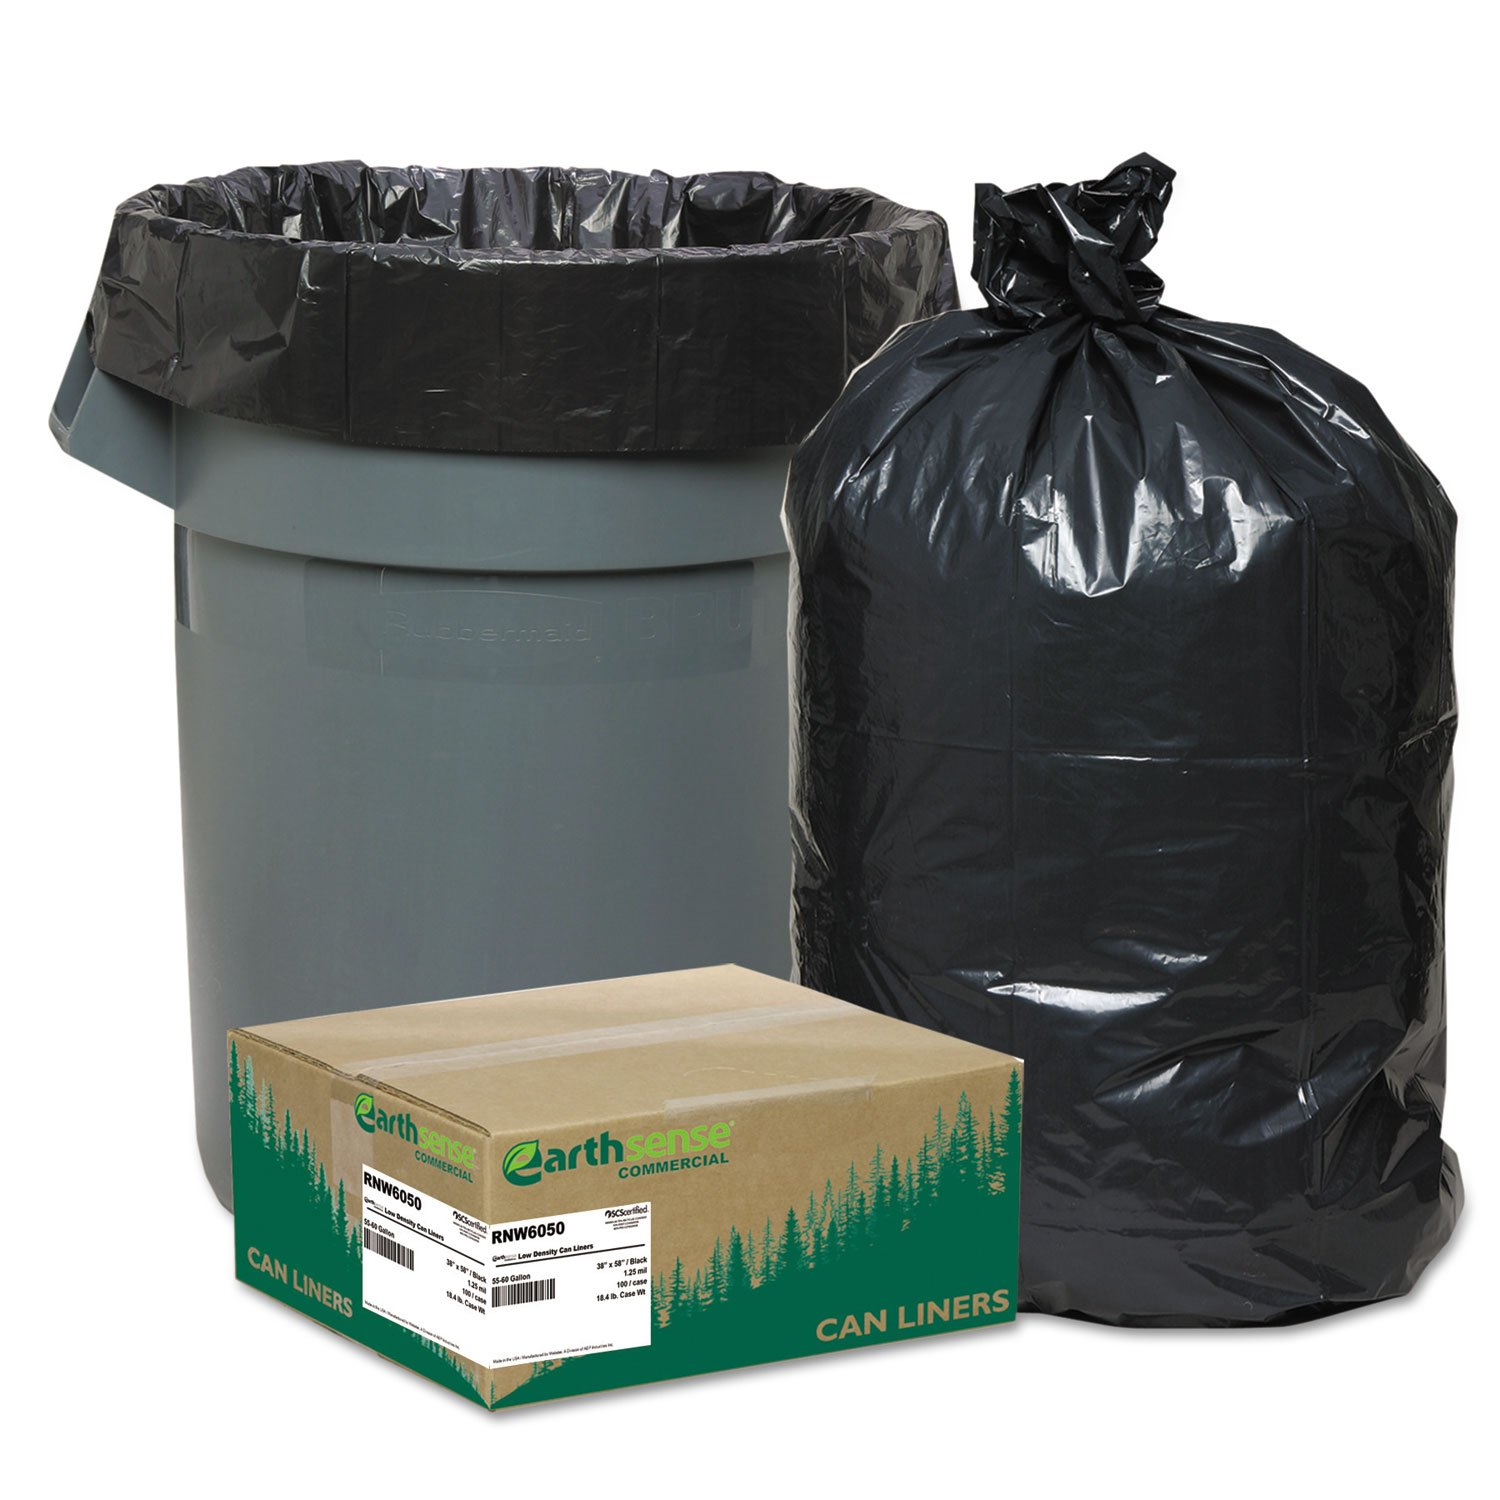 Earthsense Can Liners, 55-60 Gallons, 1.25 Milliliters, 38 x 58, Black, 100/Carton (RNW6050)